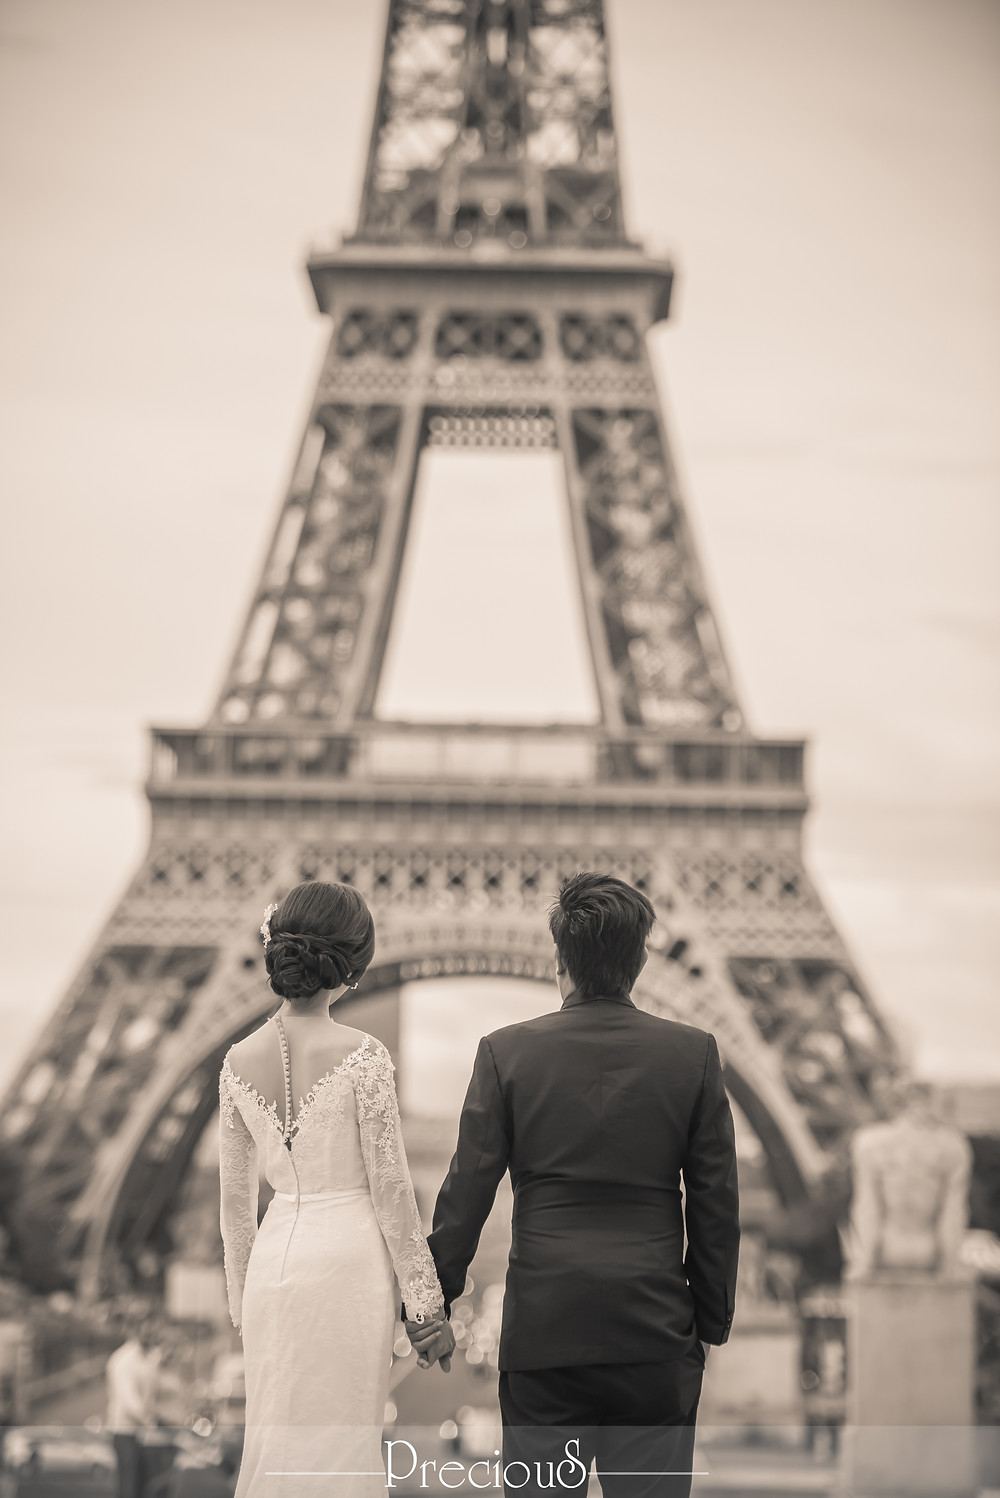 Precious Wedding | Malaysia PreWedding Paris Destination Shoot